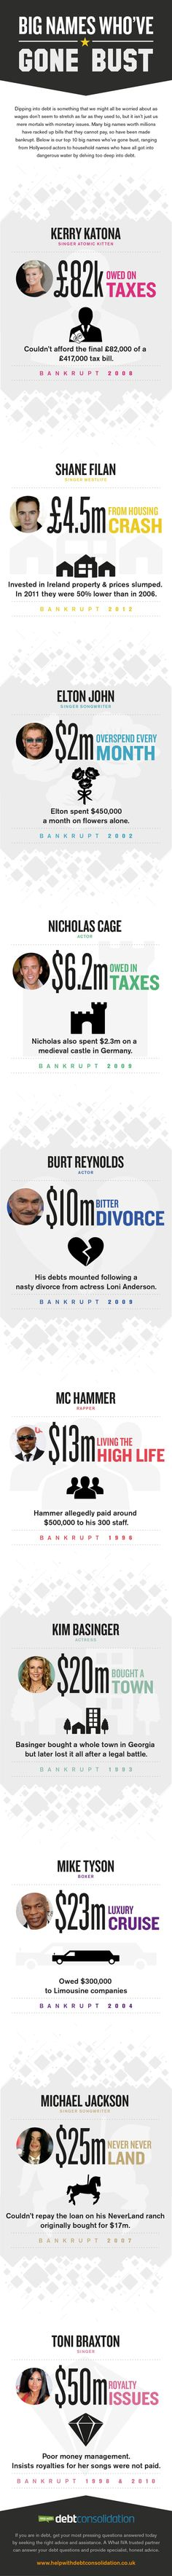 """This infographic looks at some of the famous names who have declared bankruptcy in recent years, for various """"showbiz"""" related reasons!"""